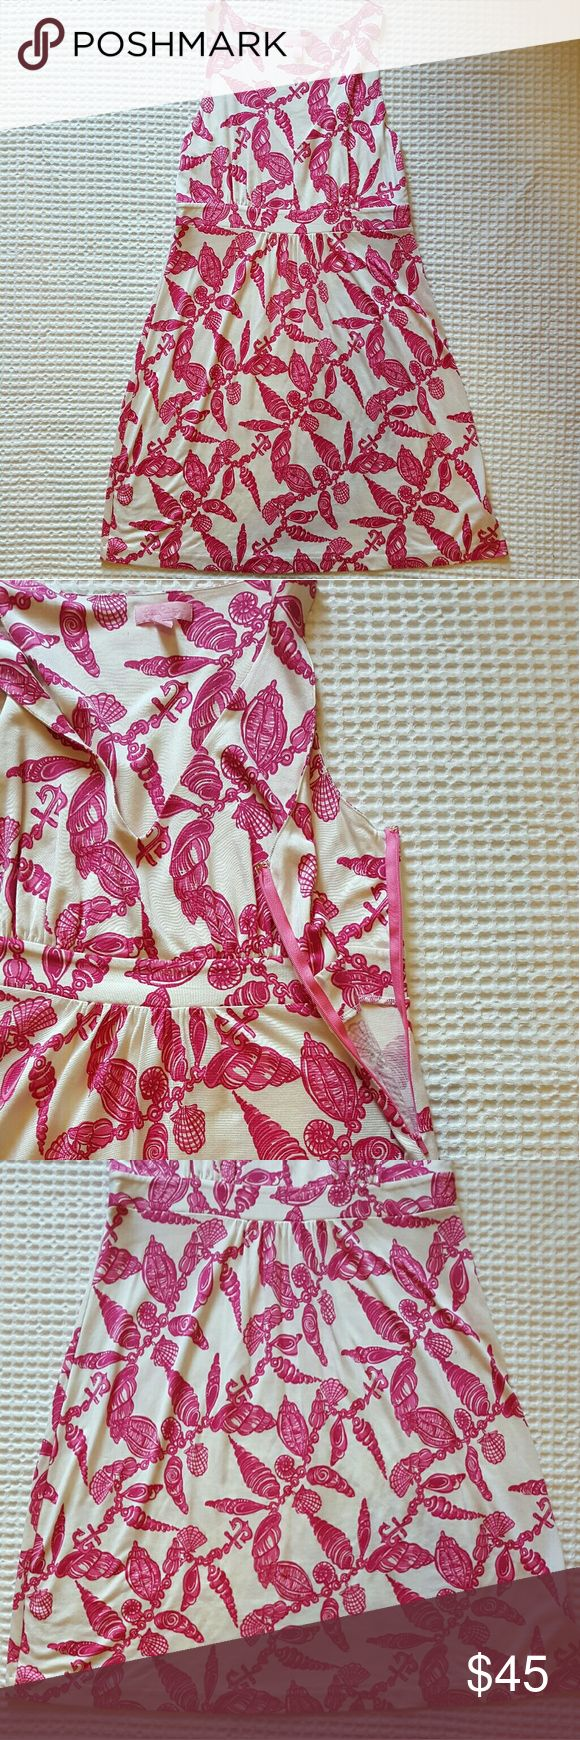 Lilly Pulitzer Pink and White Dress Size Large Large Conch Shell Pattern/Falling in Love. V neck. Dress is approximately 36 inches long. 73% Silk 27% Cotton Lilly Pulitzer Dresses